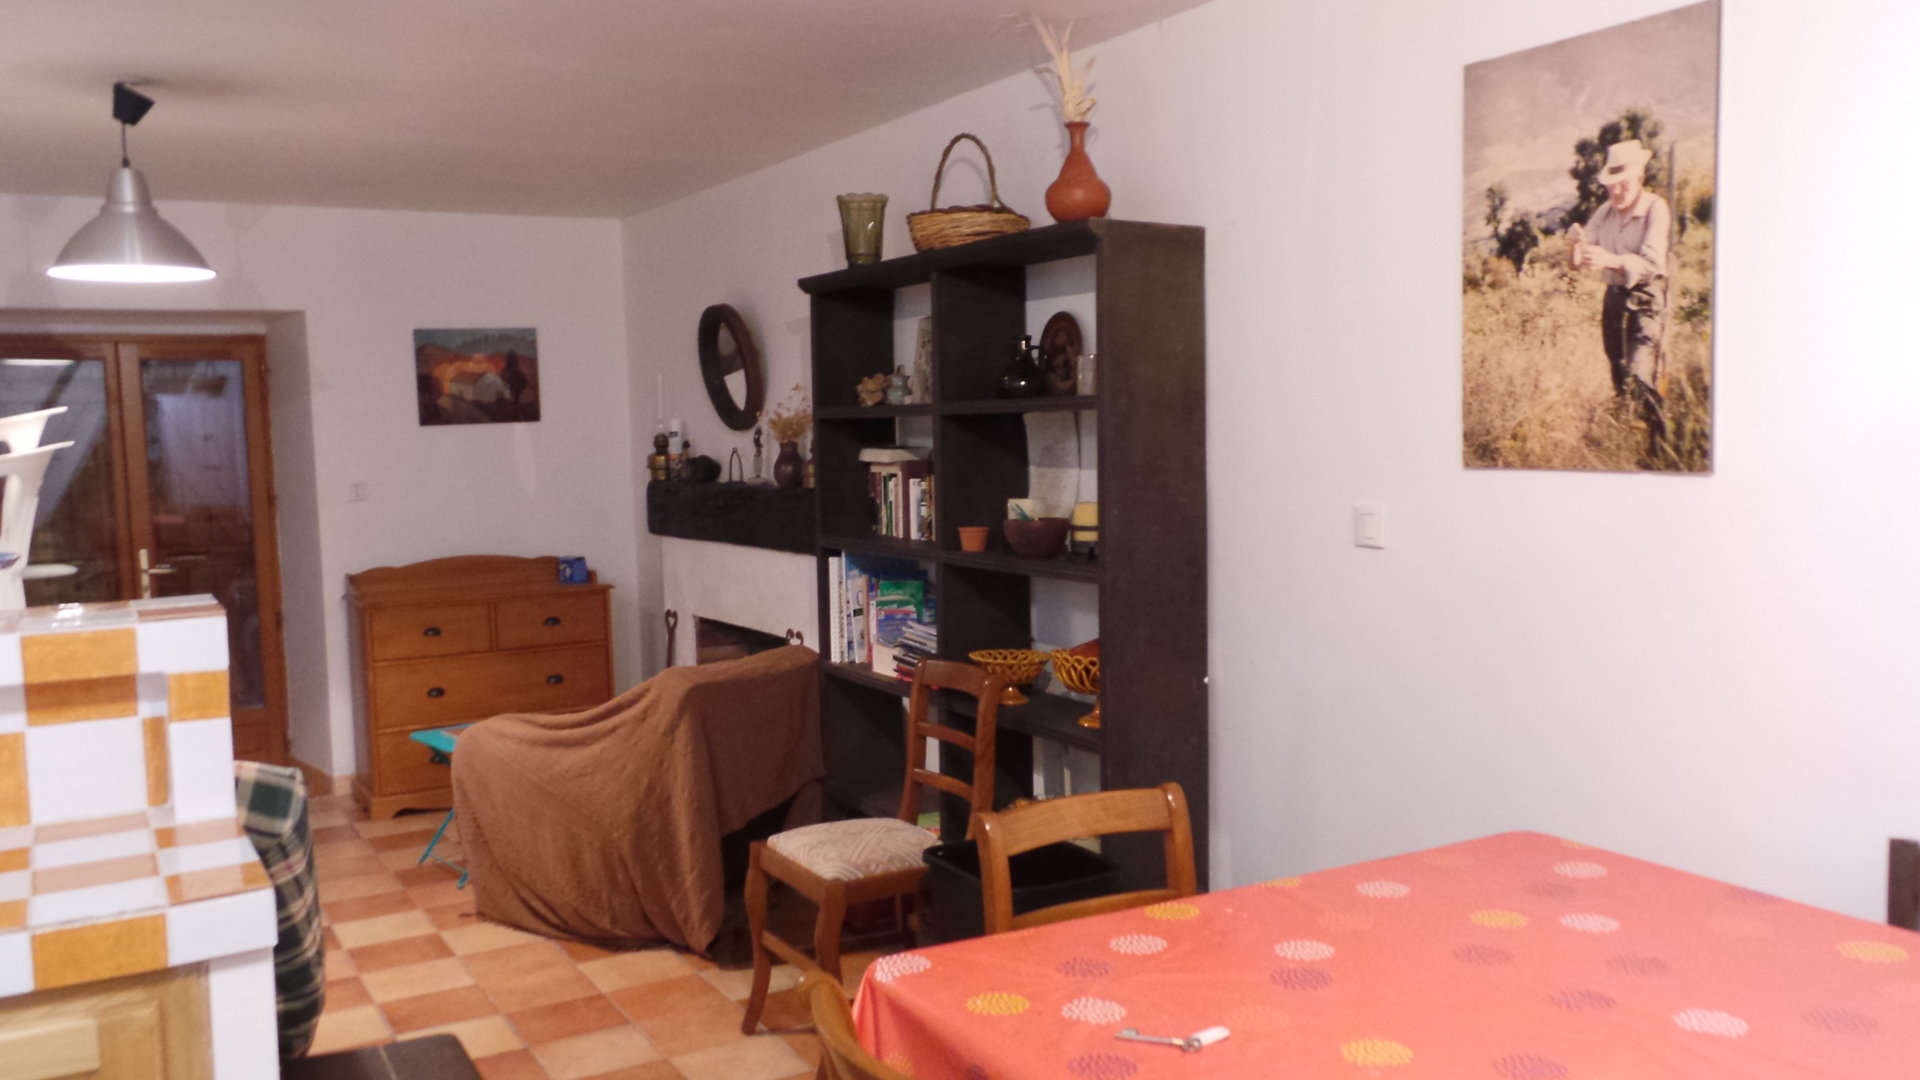 Seasonal rental Apartment - Viggianello